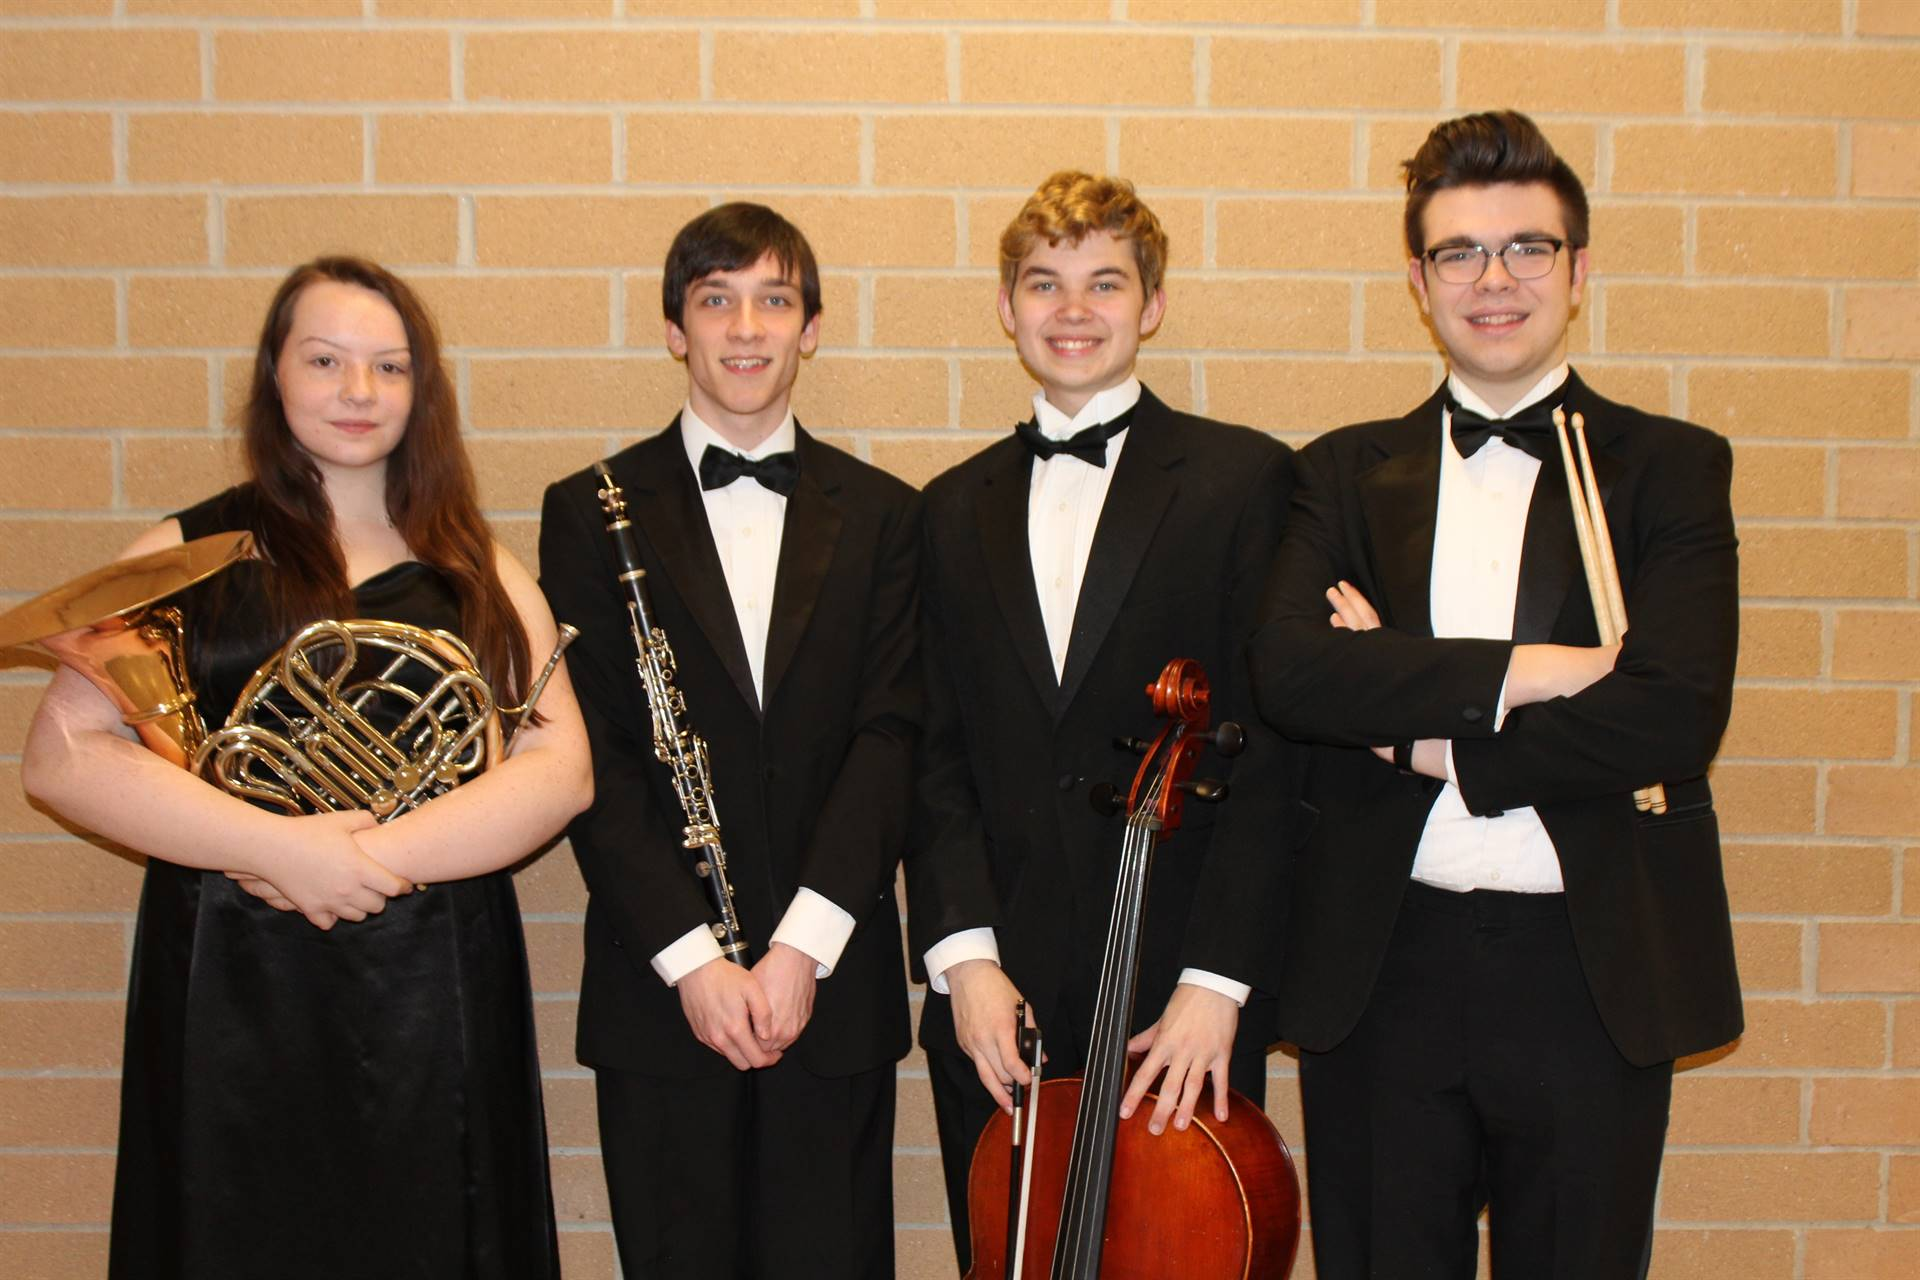 The four Region Orchestra musicians